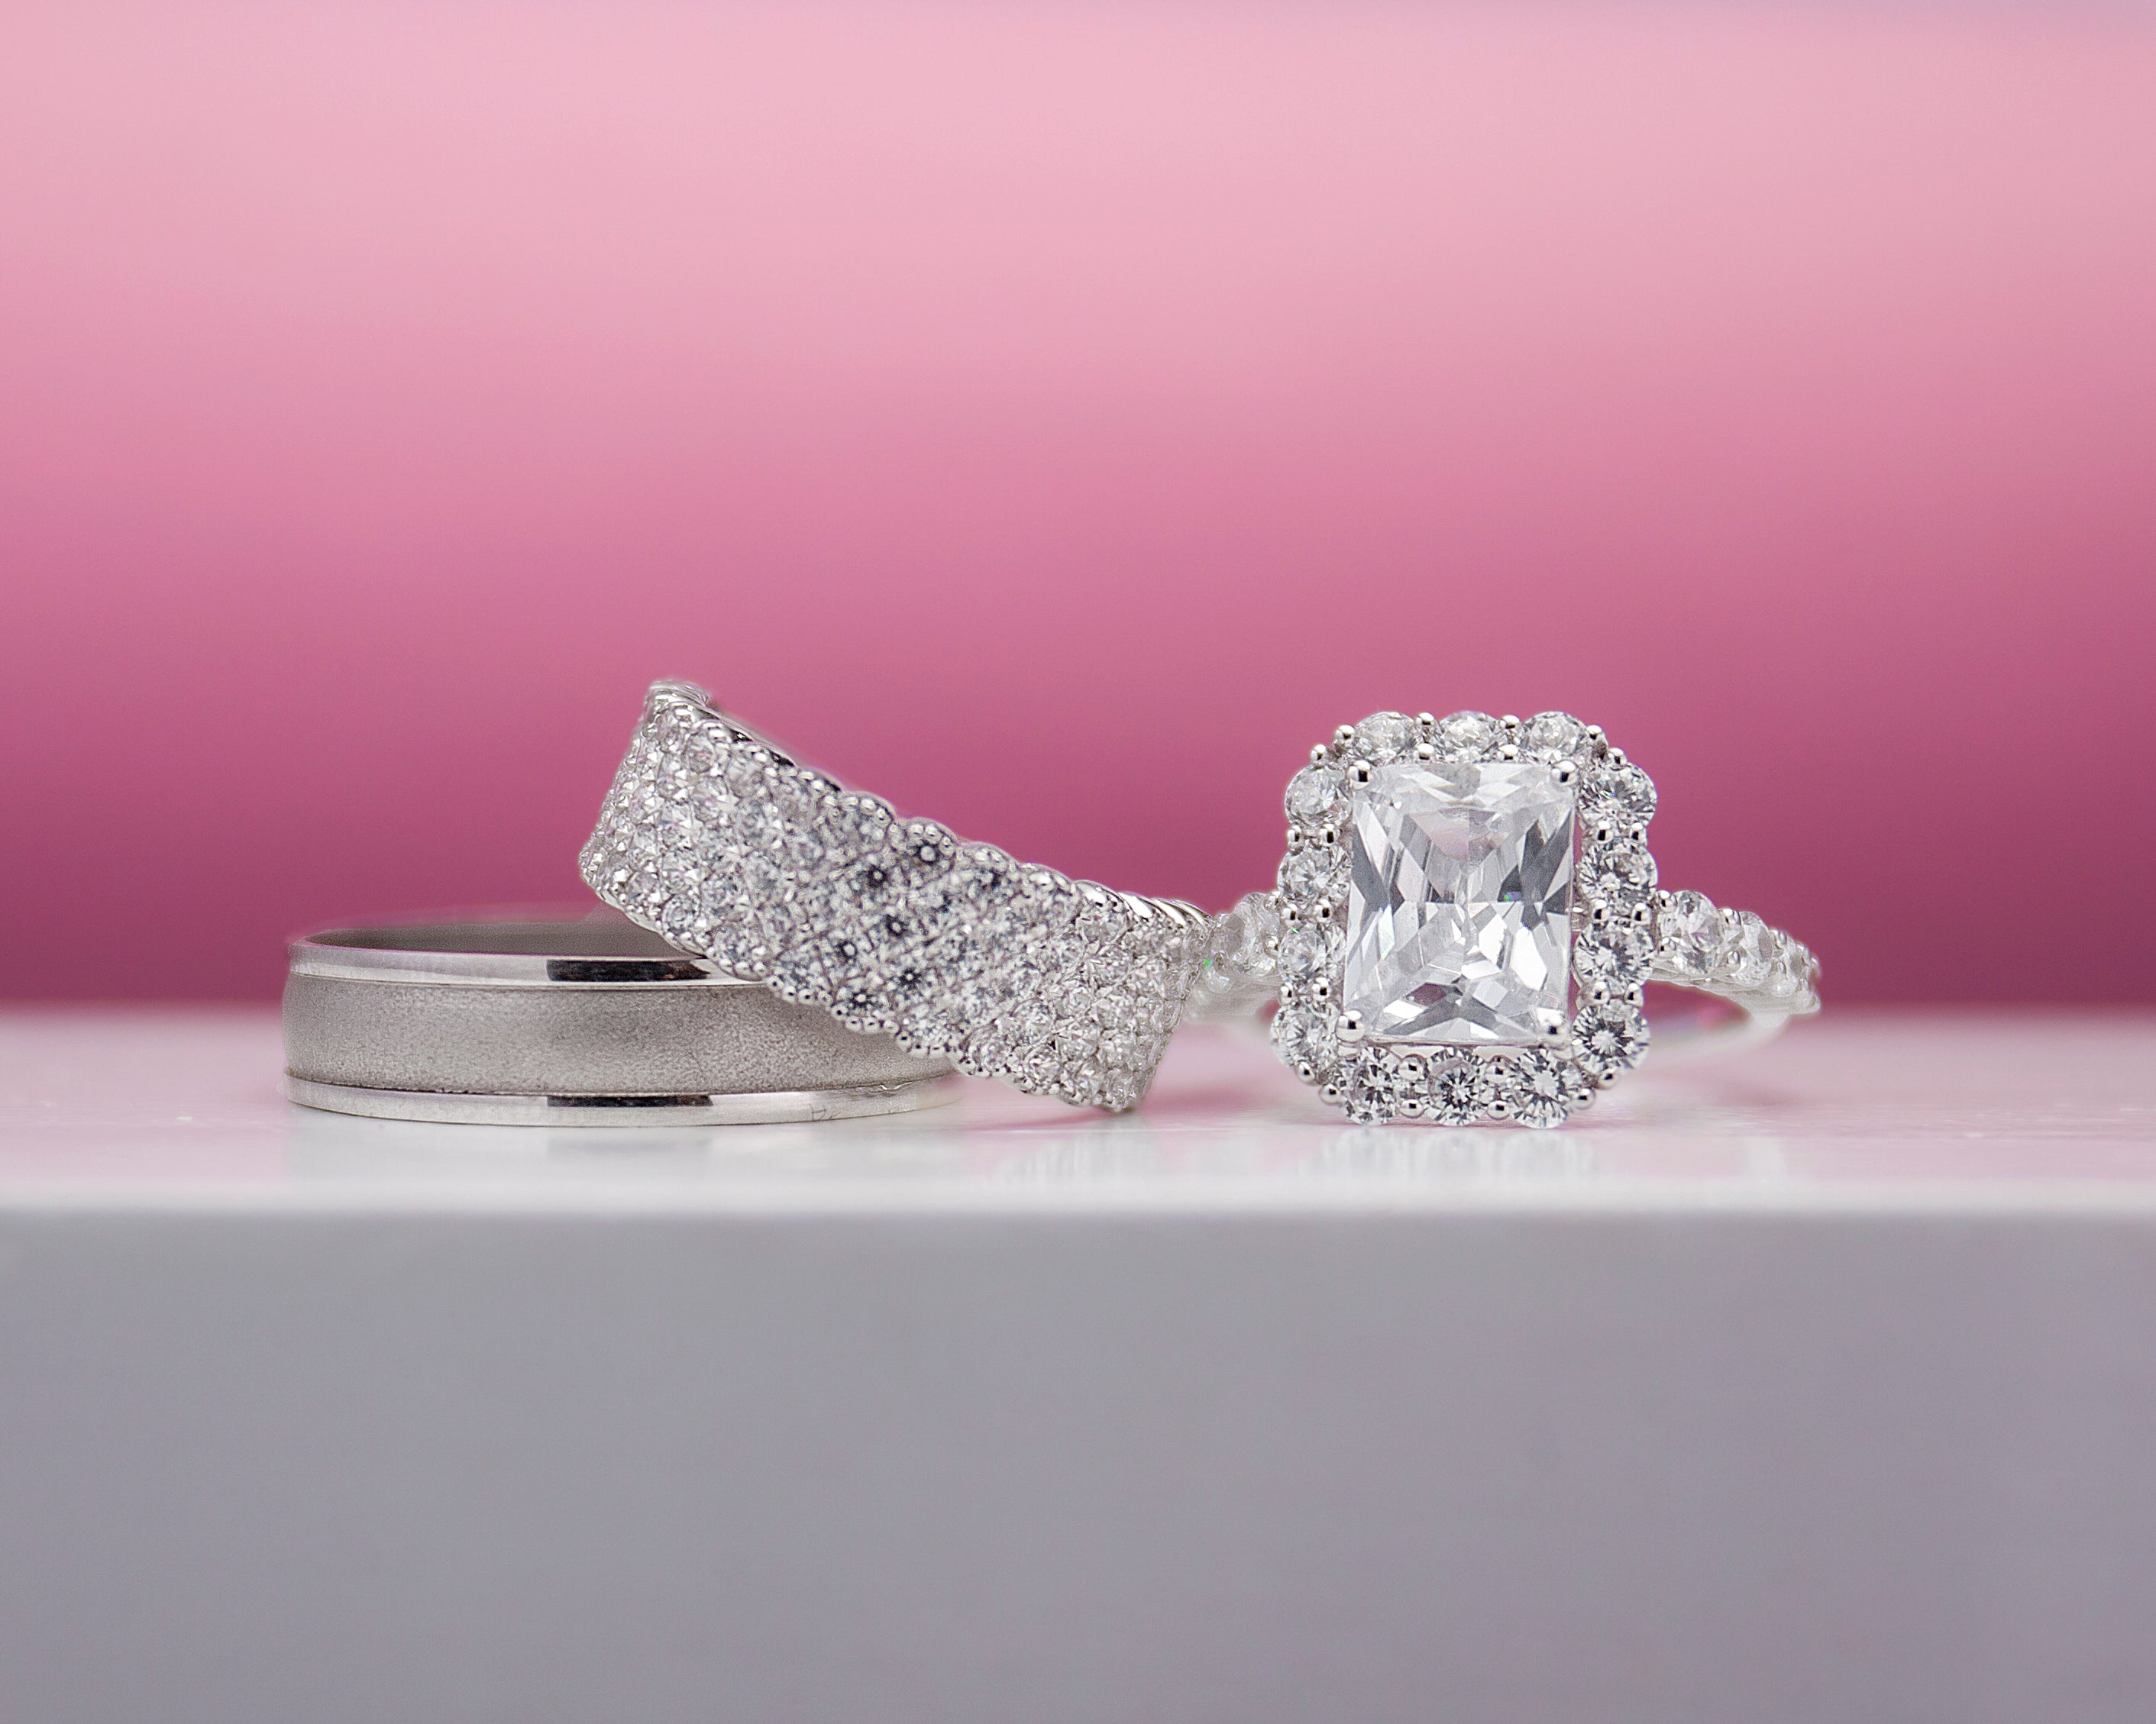 How to maintain a white Gold Ring